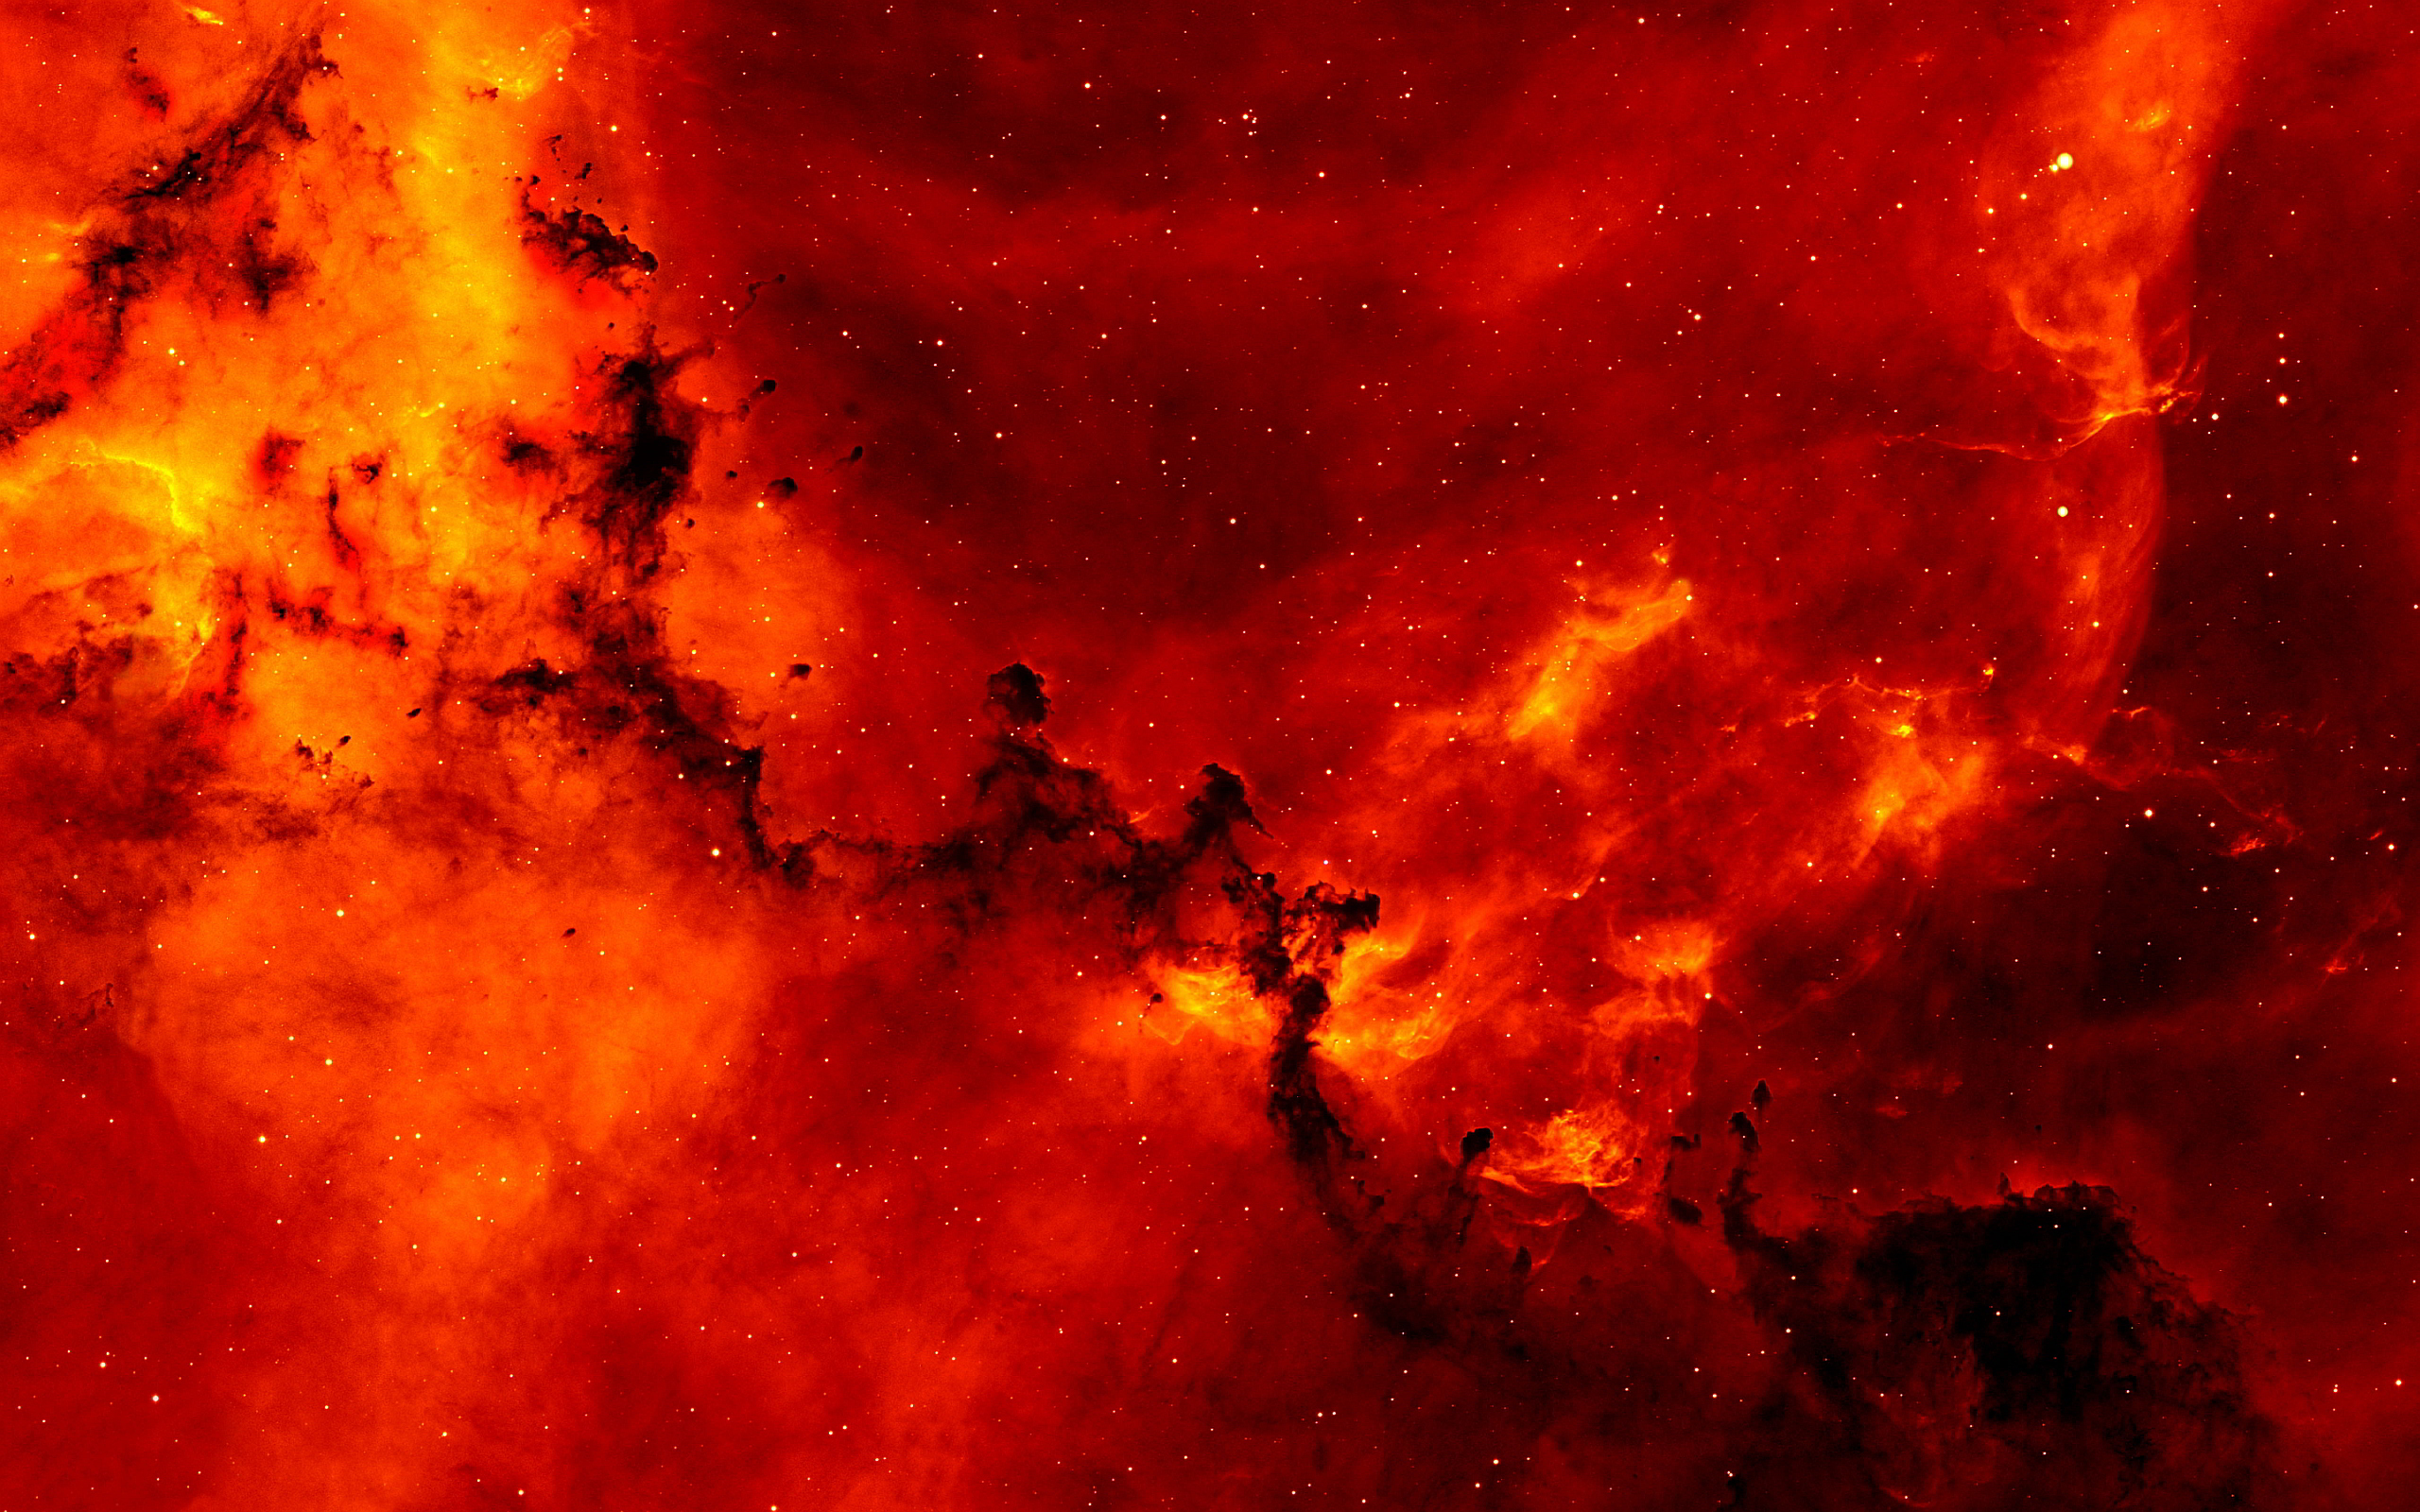 Red cosmic nebula